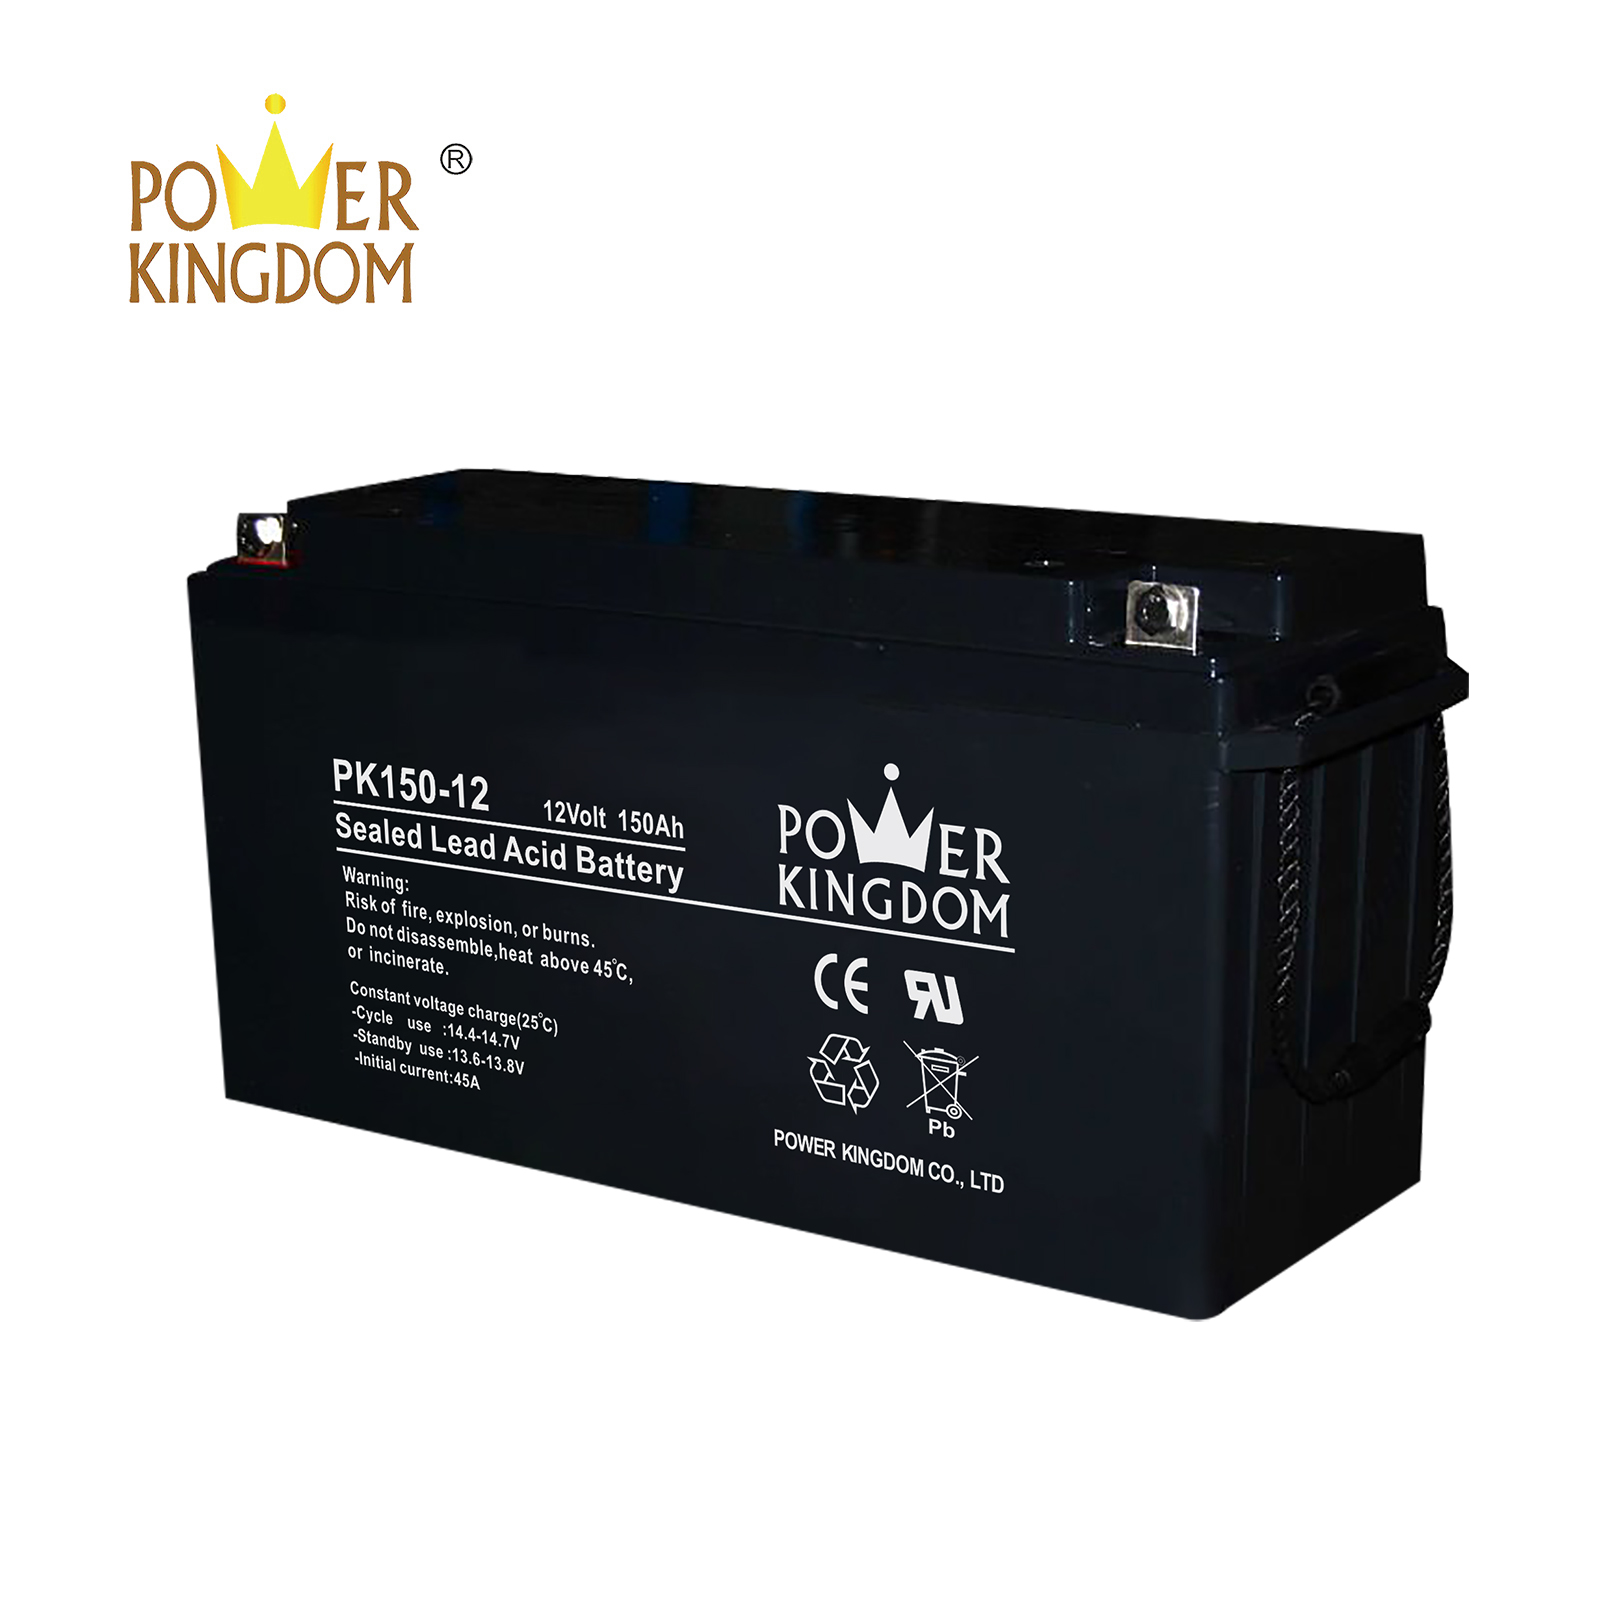 Power Kingdom gel cell deep cycle battery order now solar and wind power system-2